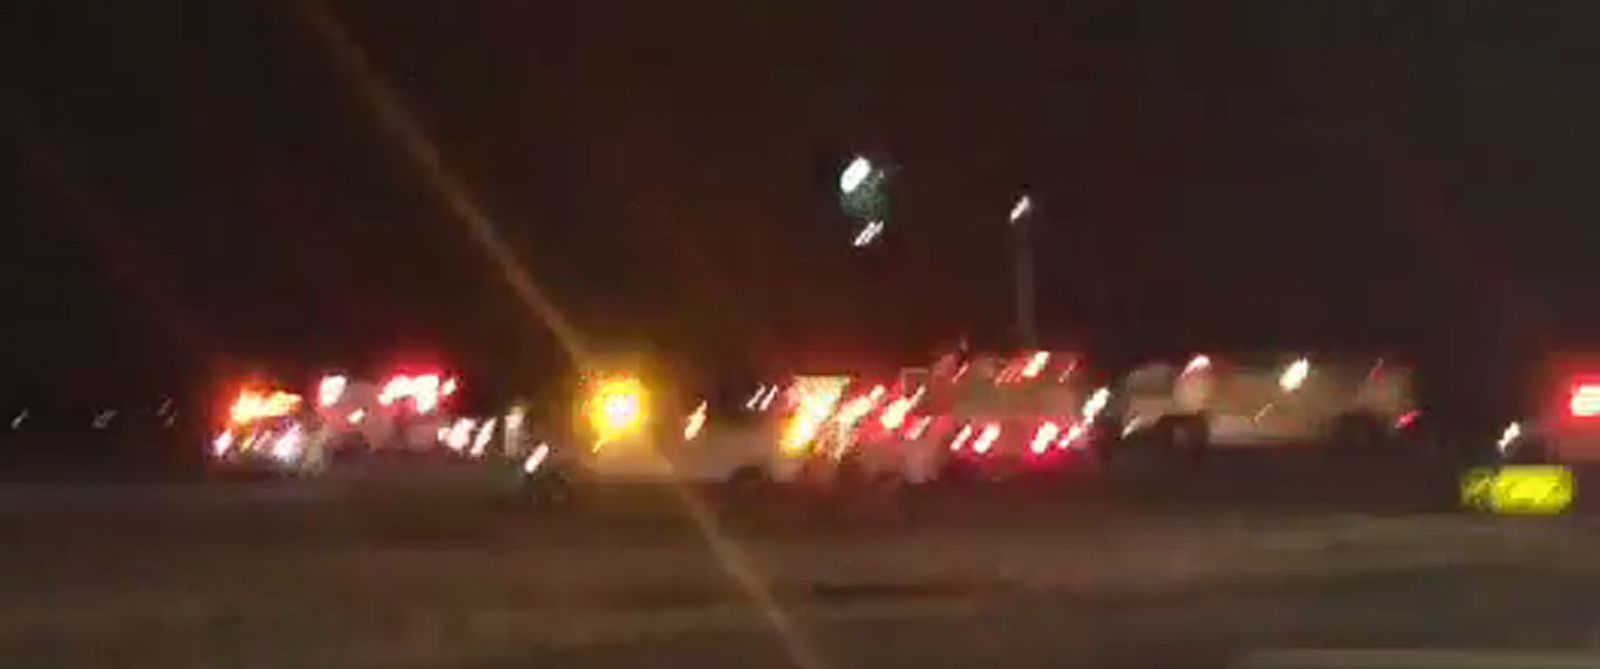 PHOTO: Emergency vehicles at John F. Kennedy International Airport in New York City after a reported bomb threat.